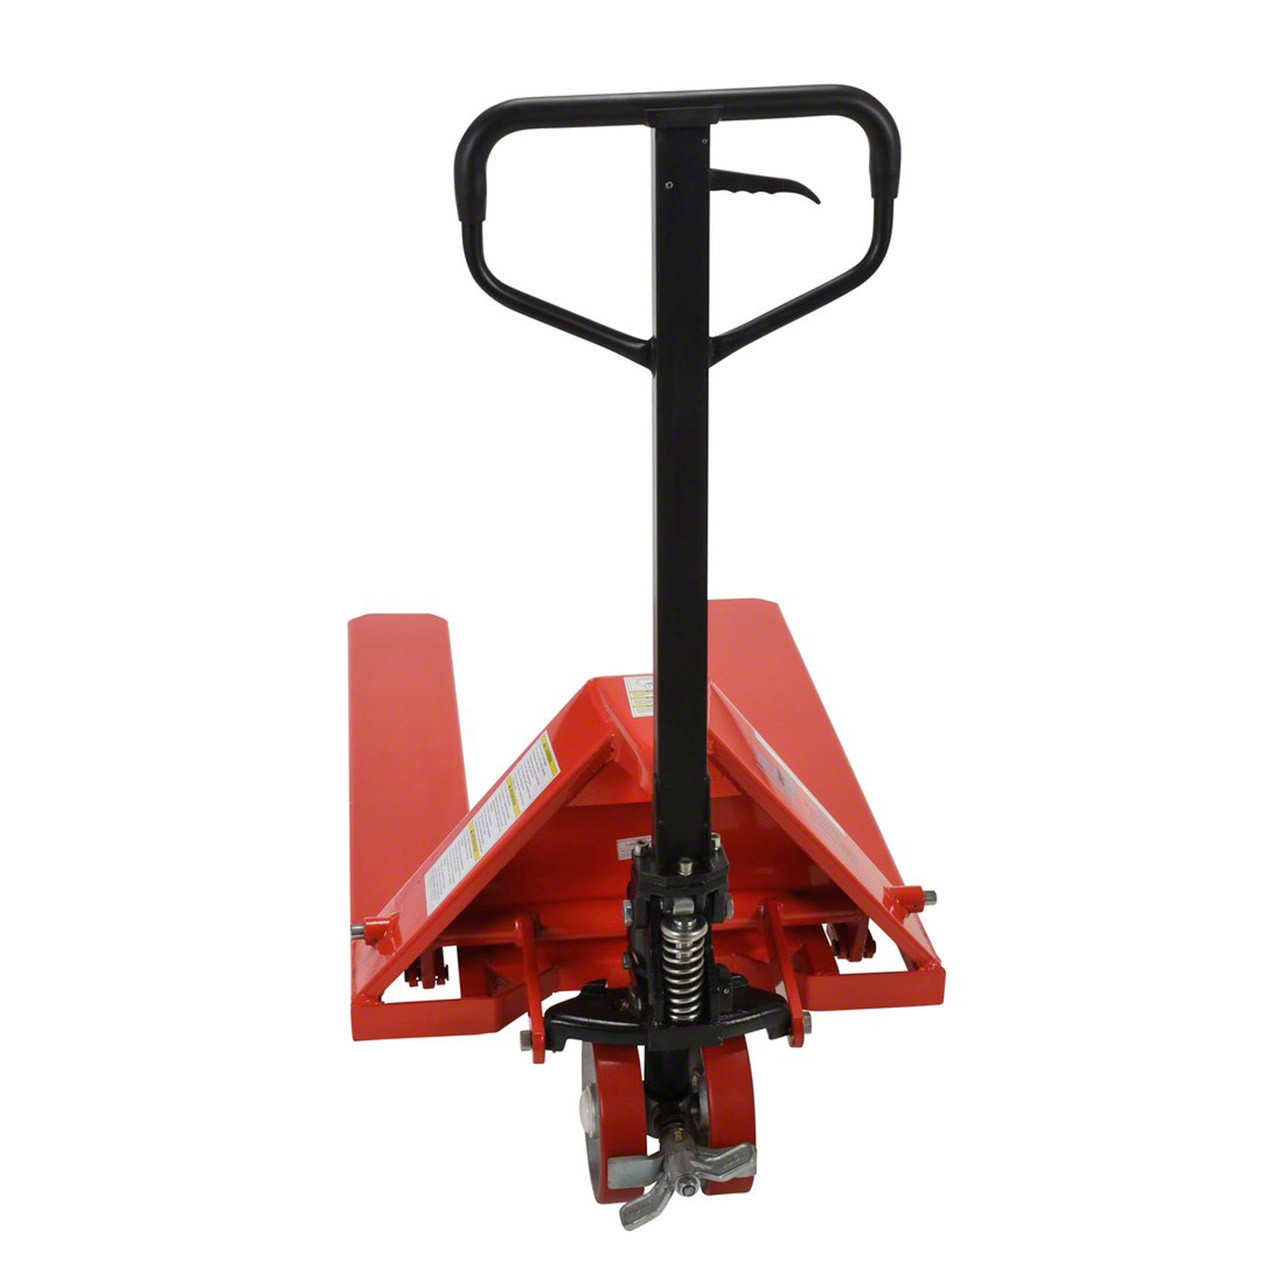 Back view of the wheel nose pallet jack